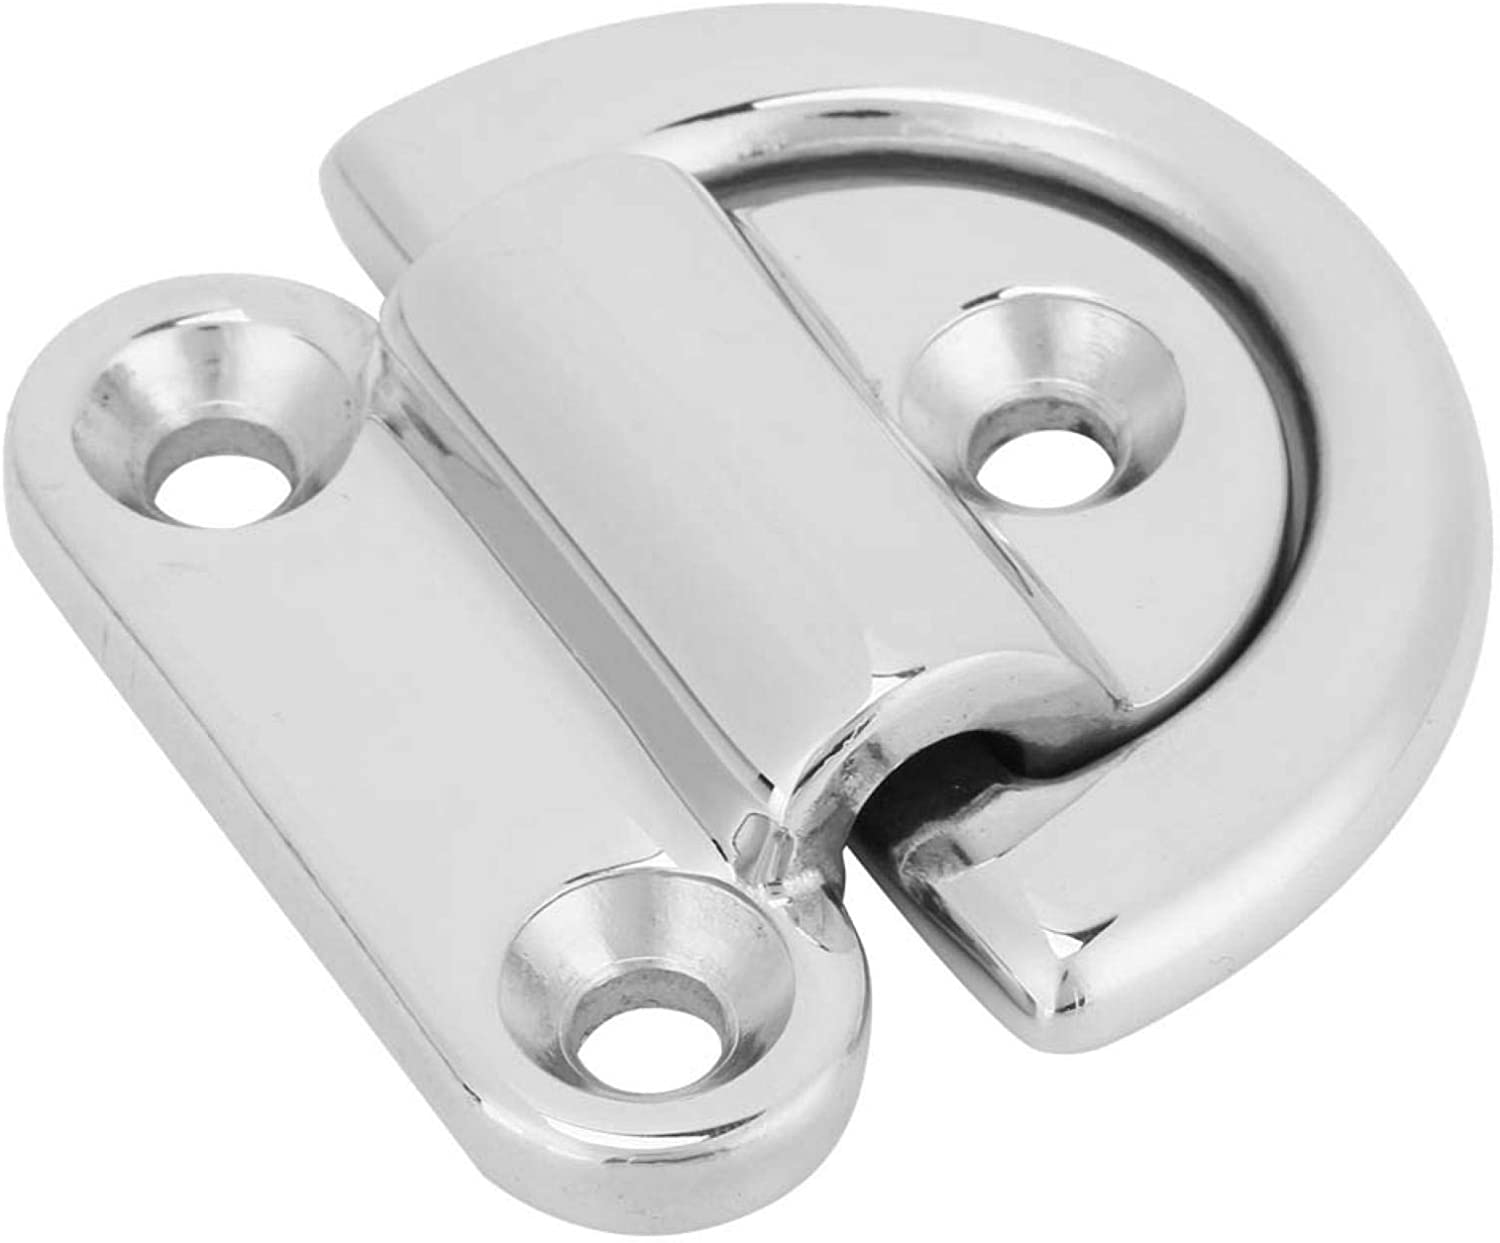 Stainless Steel Boat Folding Pad Brand Cheap Sale Venue Eyes Down D Lashing service Ring Cl Tie